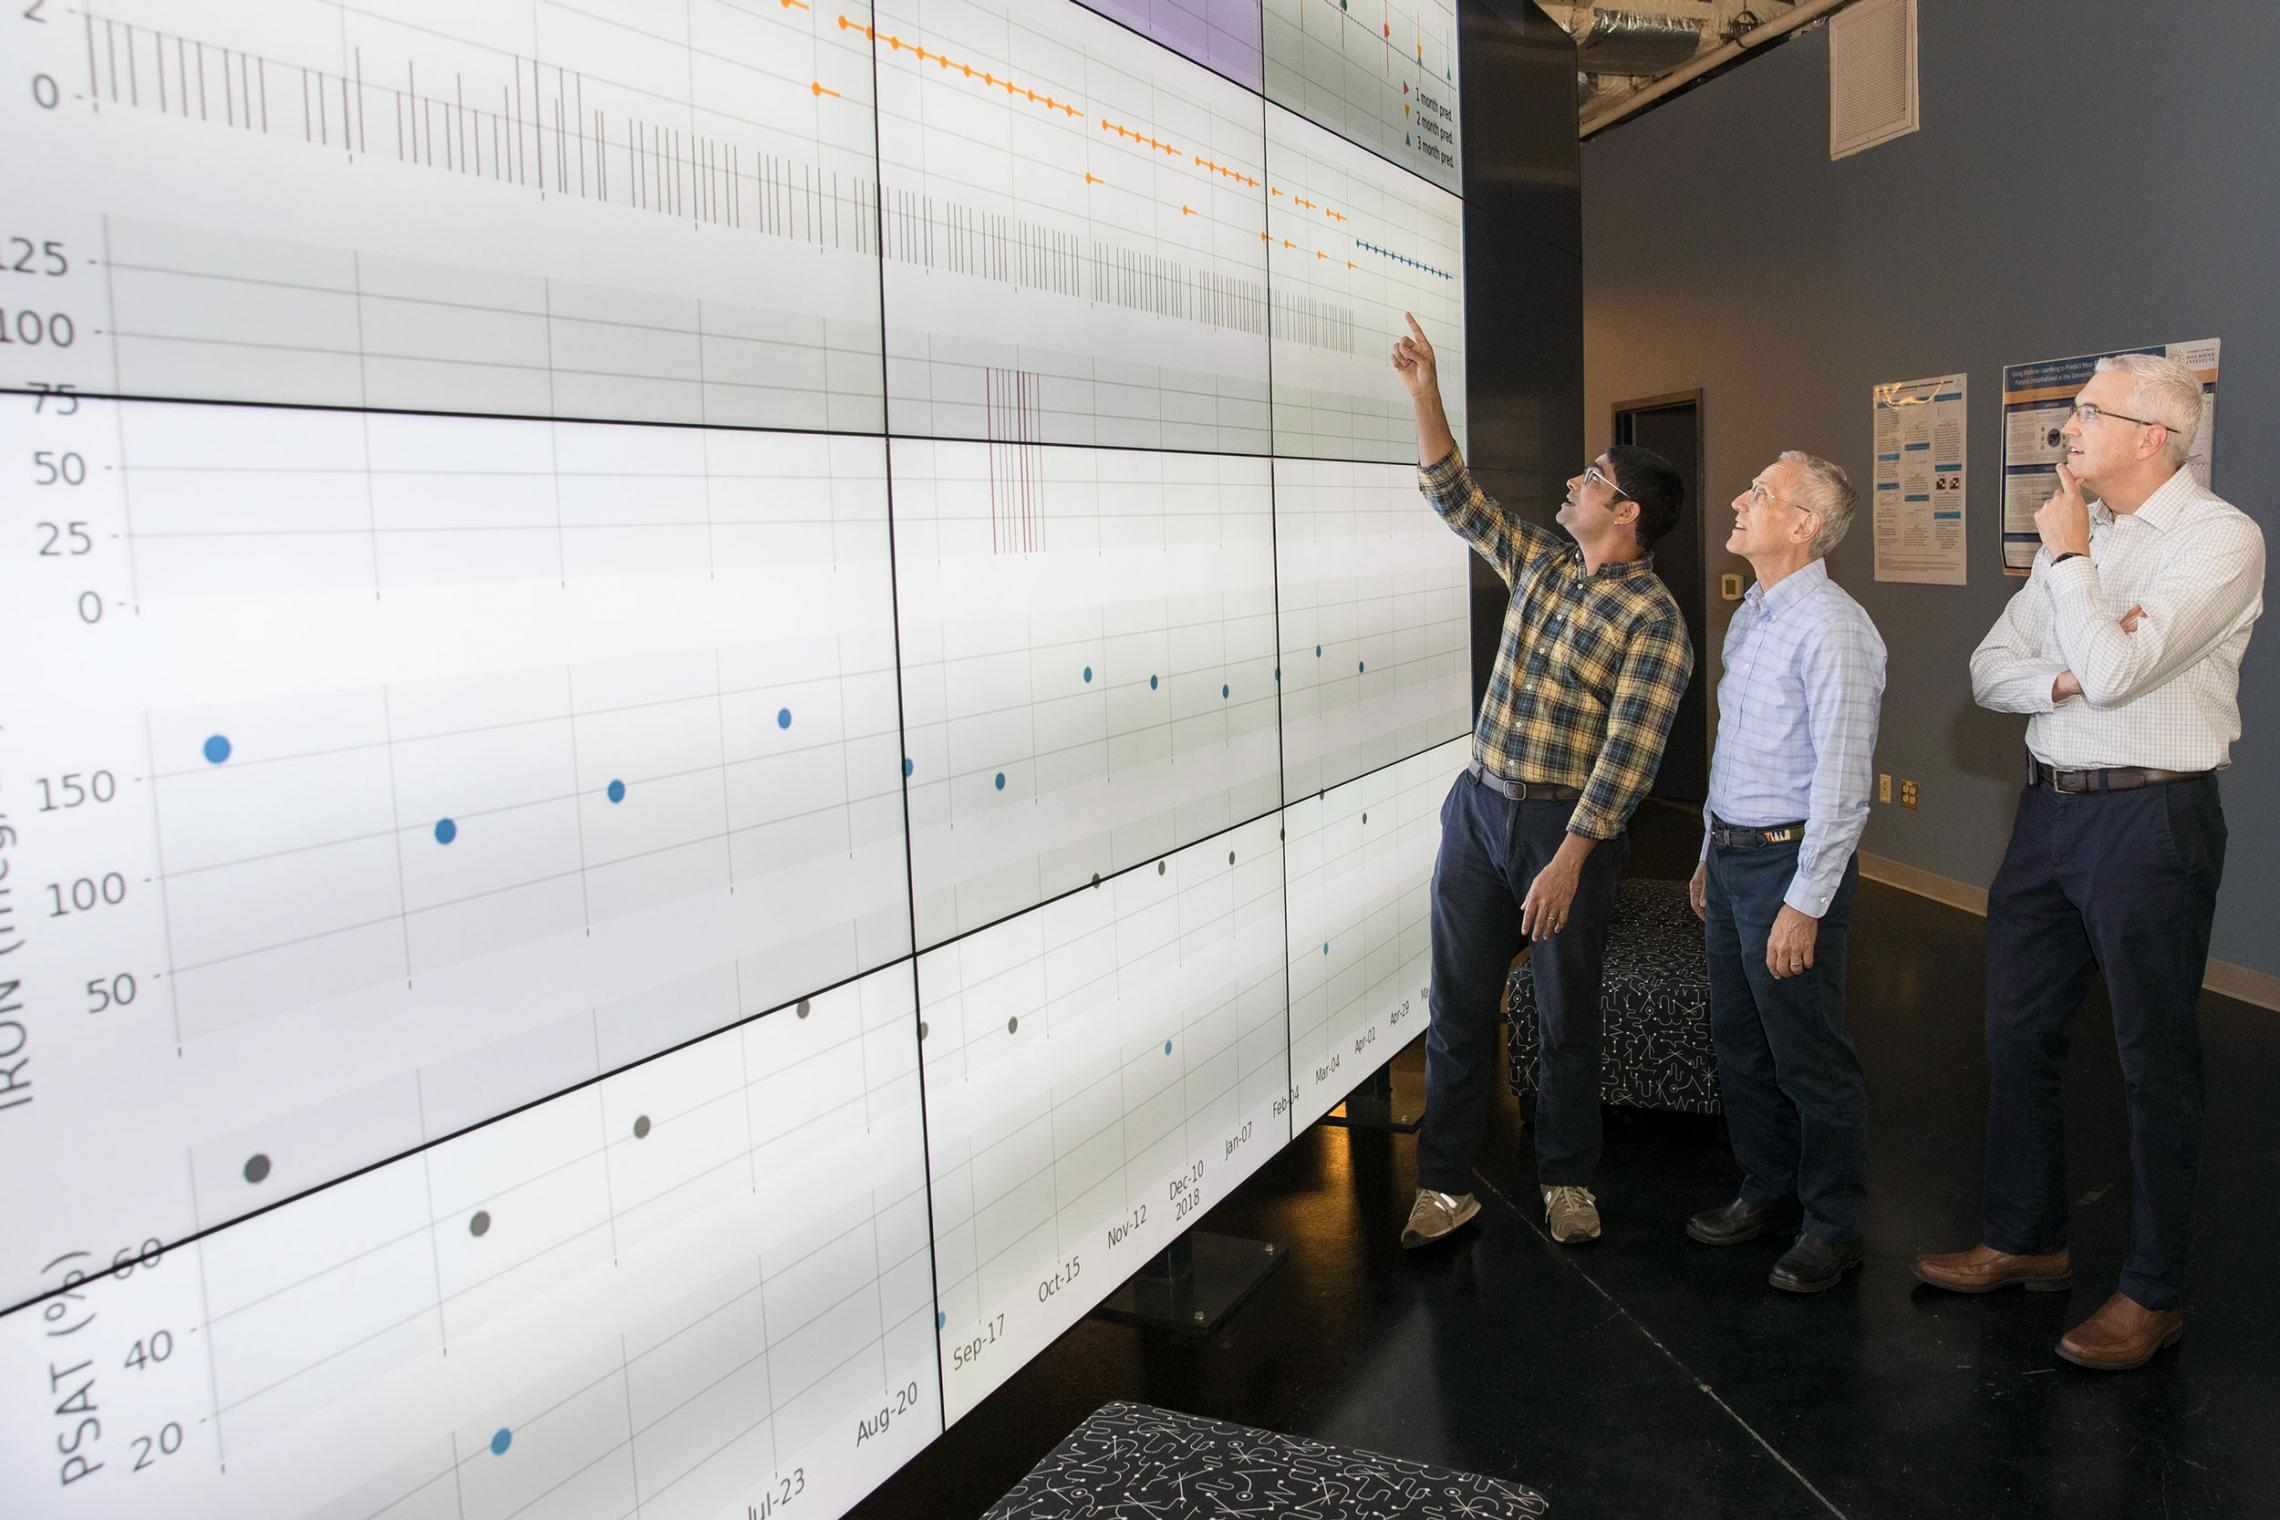 Data scientists Benjamin Lobo, left, and Don Brown, center, discuss study findings with Dr. Brendan Bowman, director of UVA's 11-clinic dialysis system.